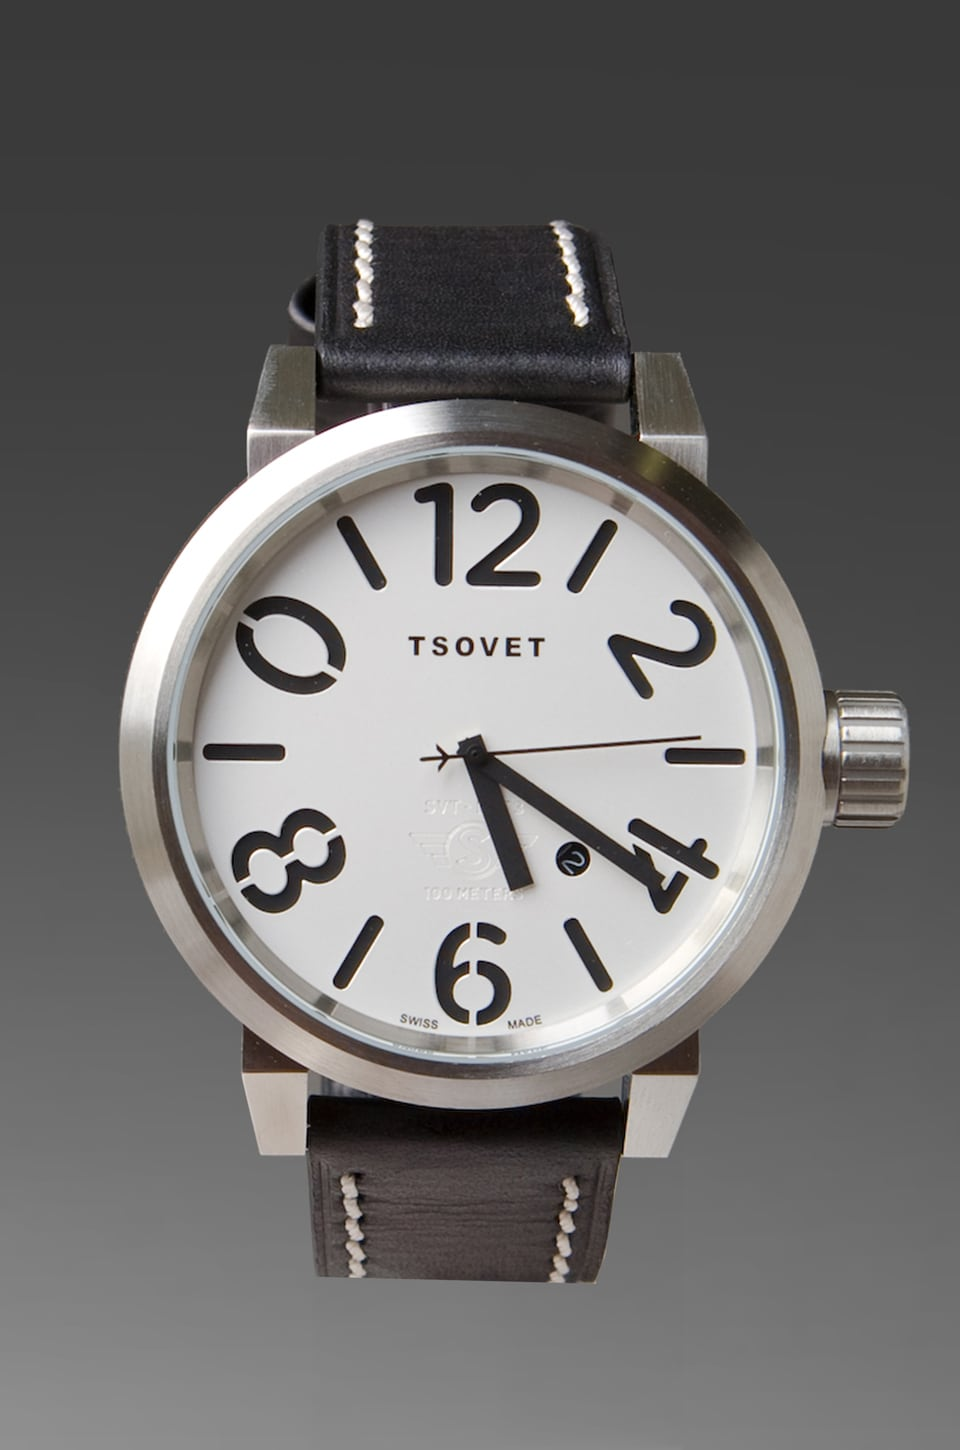 Tsovet SVT-LX73 in Silver/Black